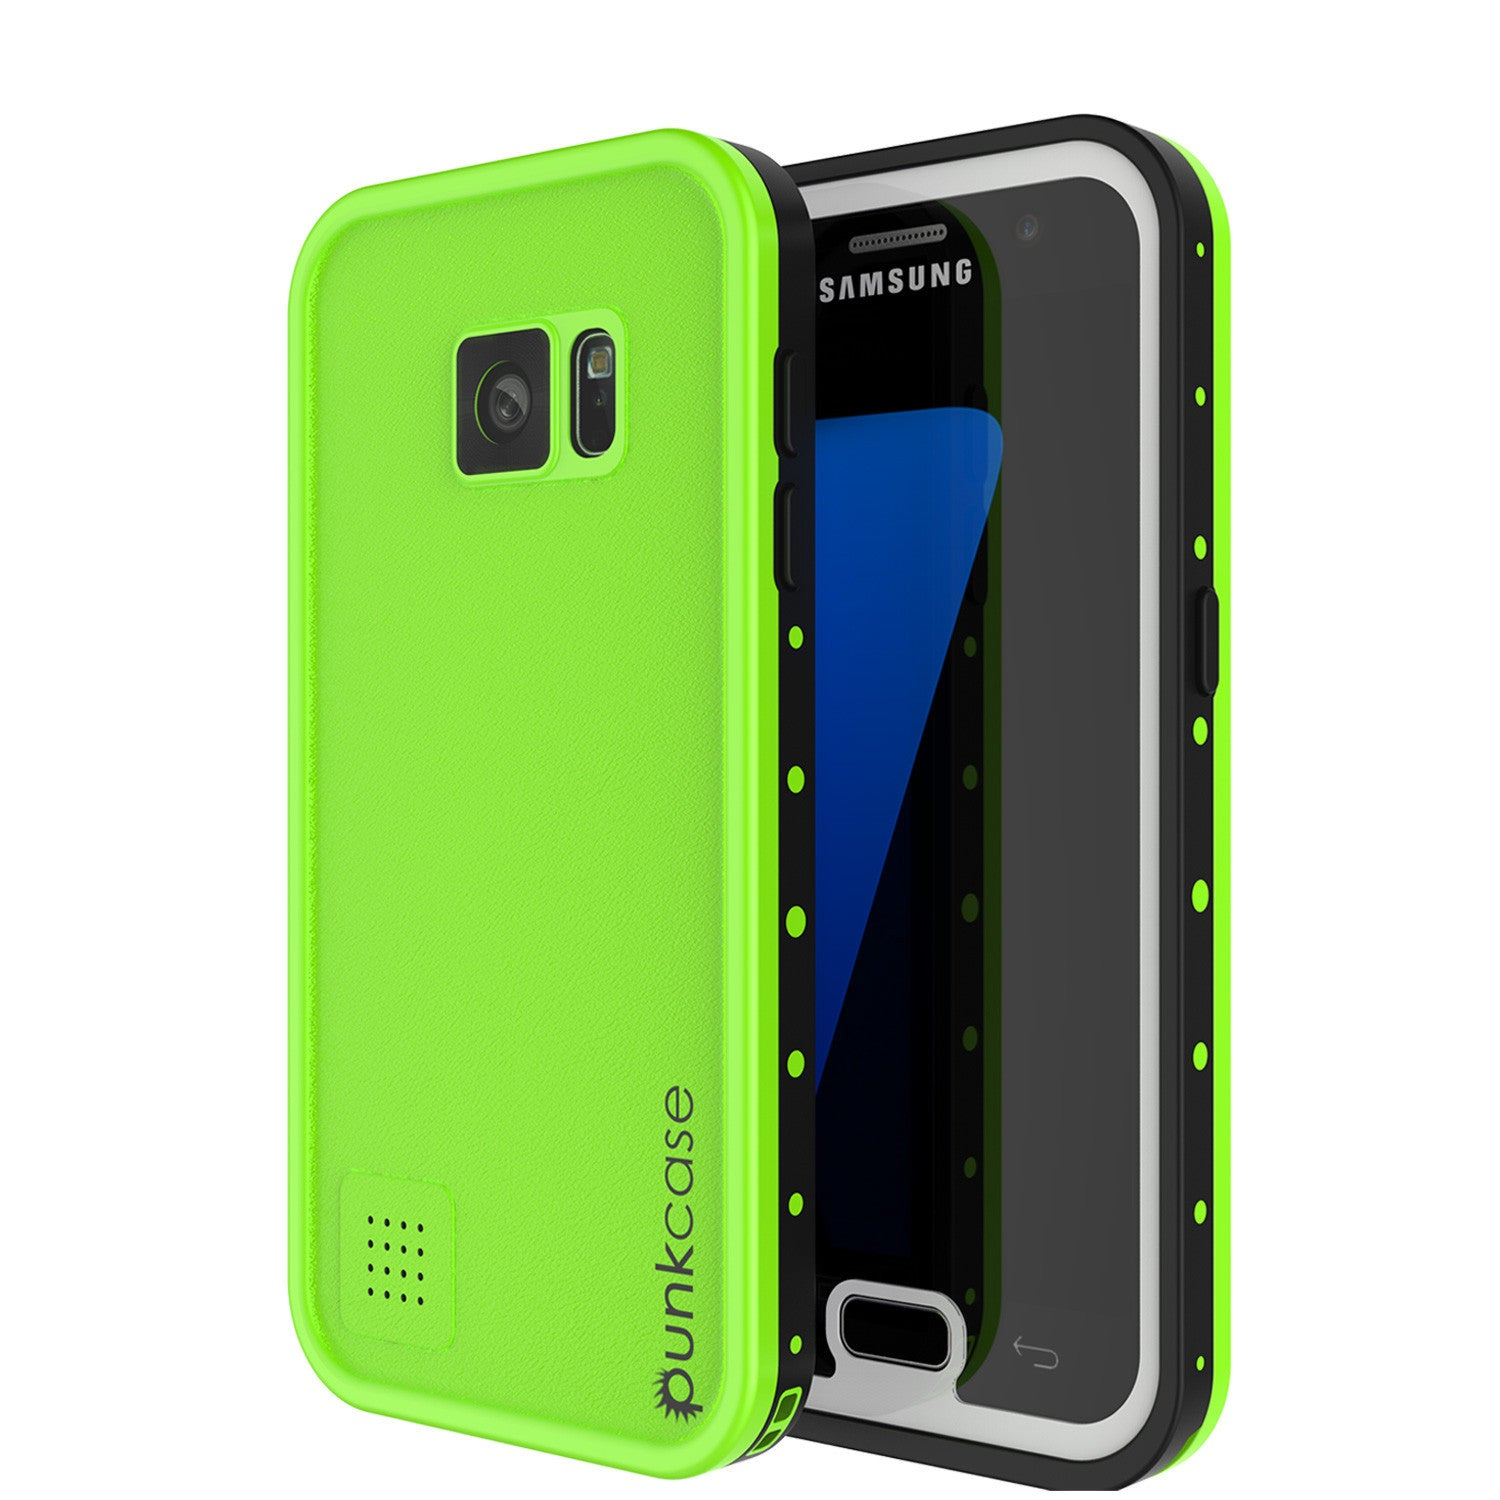 Galaxy S7 Waterproof Case PunkCase StudStar Light Green Thin 6.6ft Underwater IP68 Shock/DirtProof